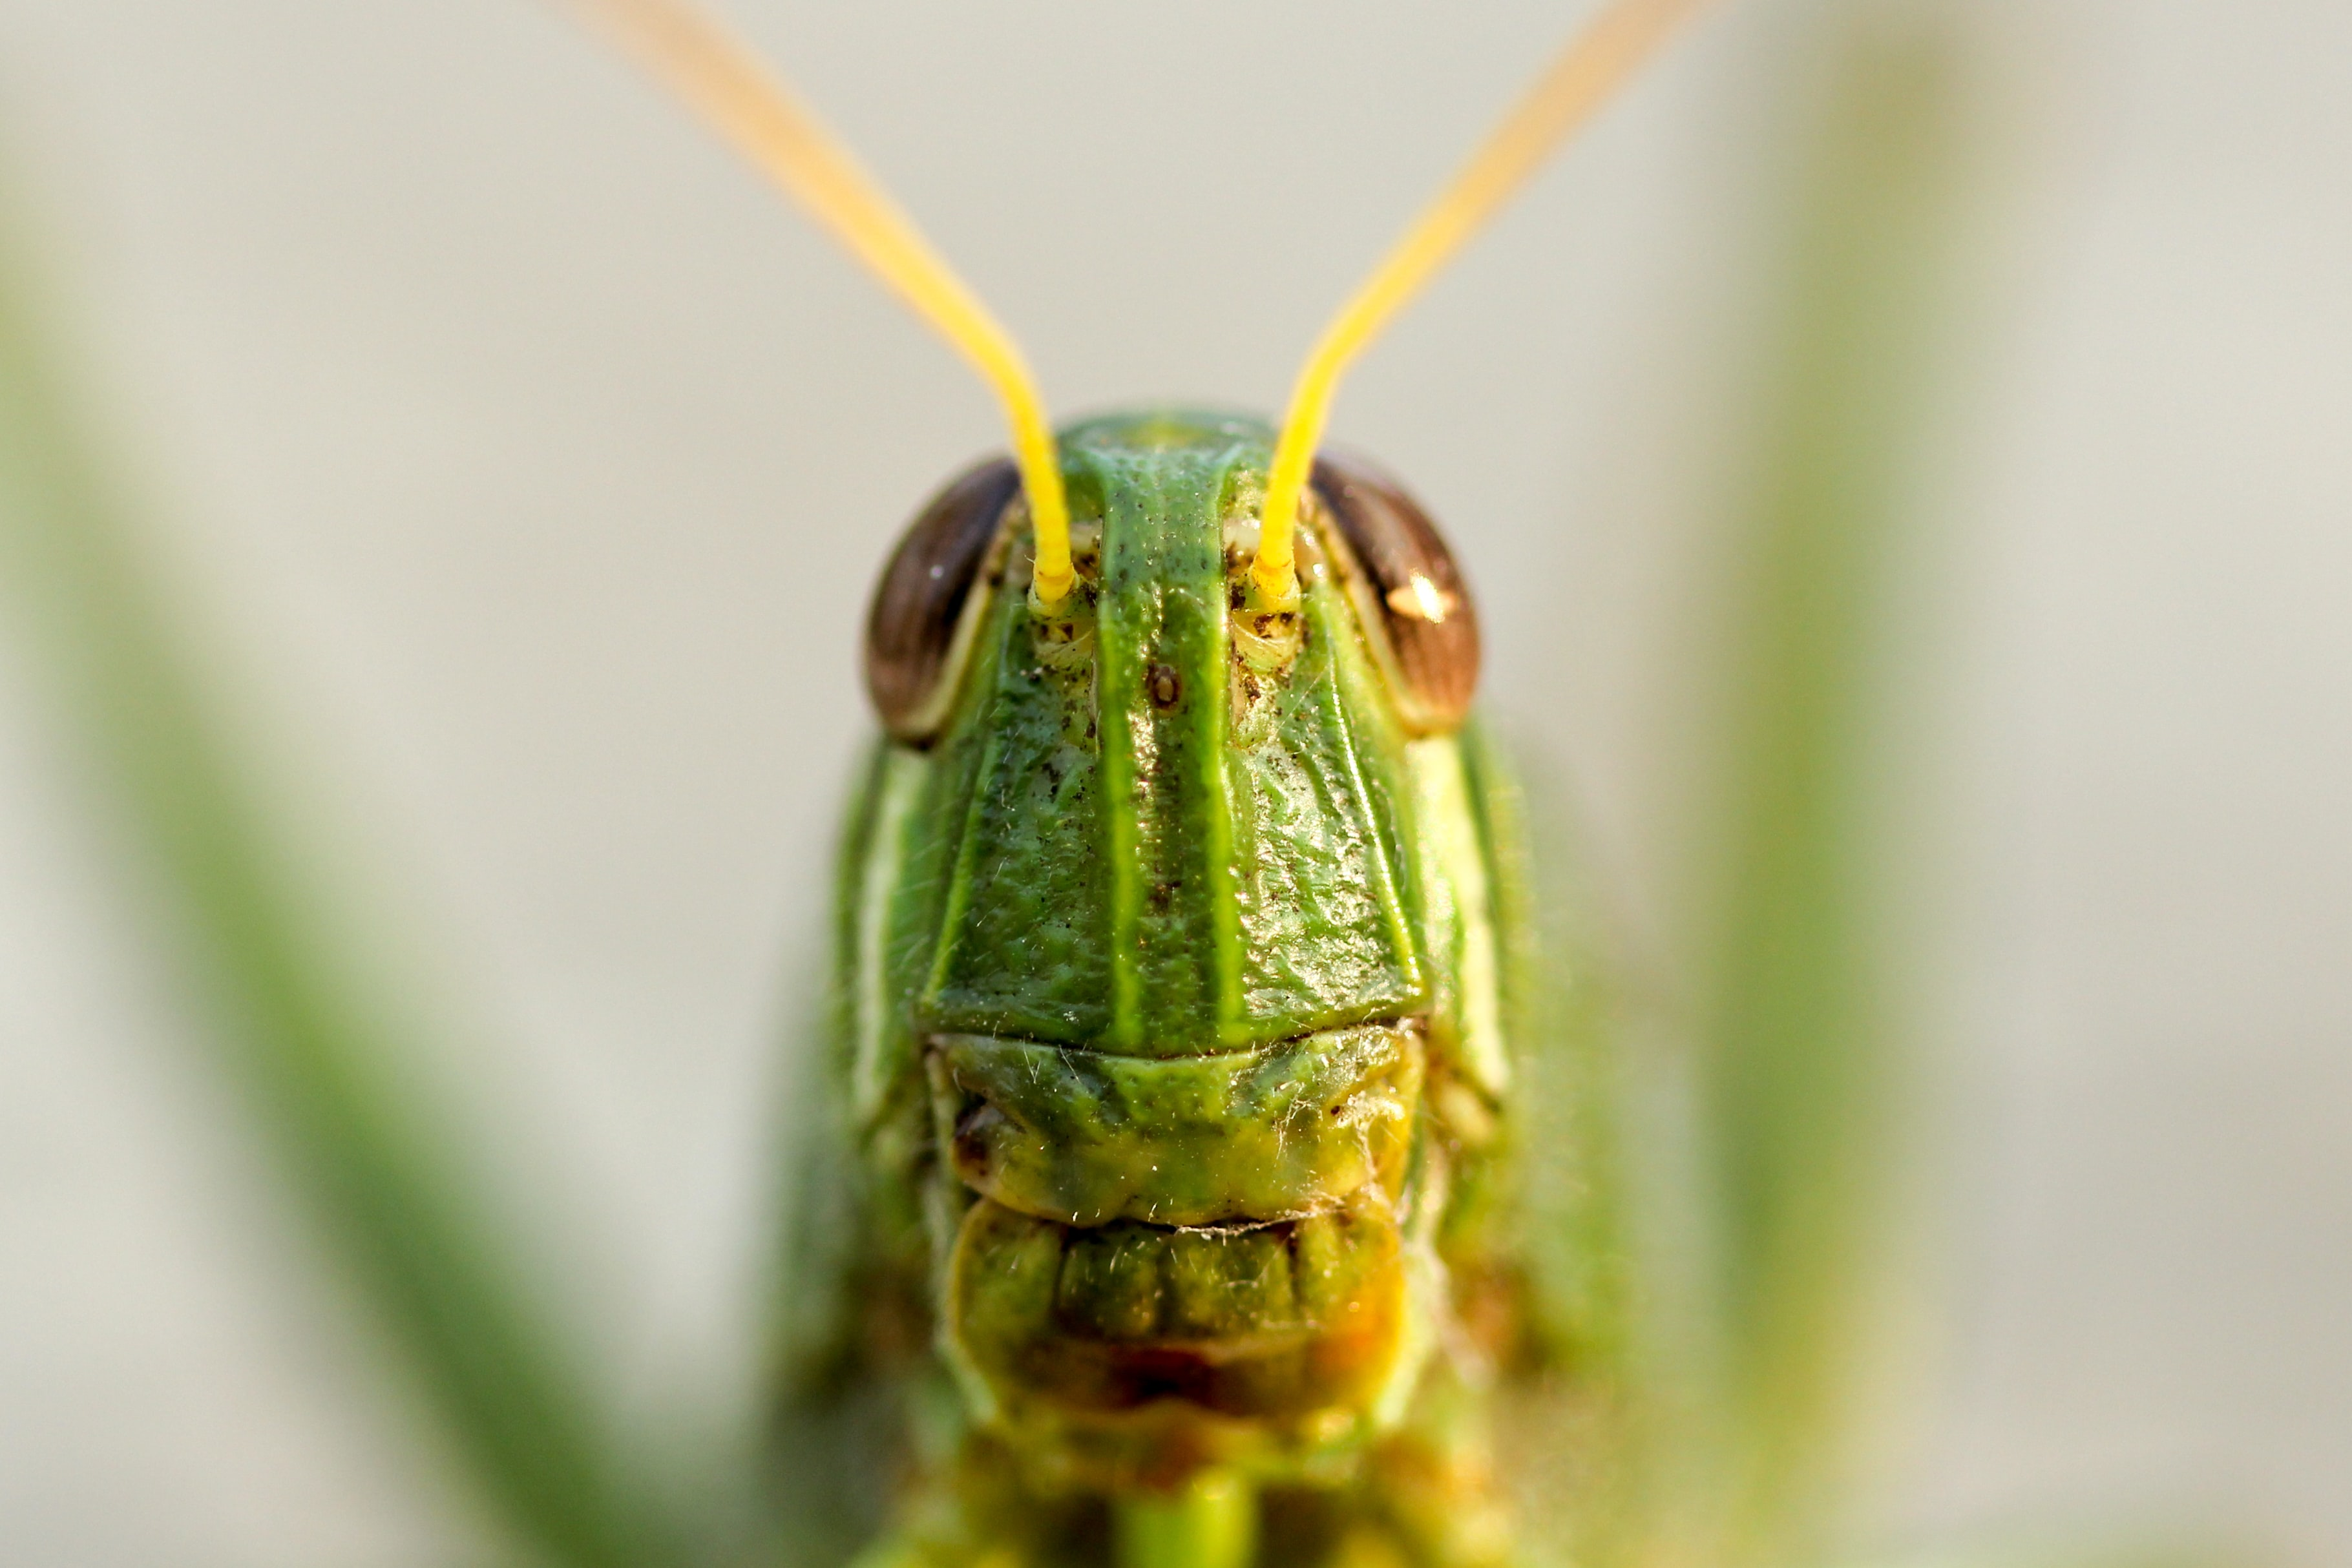 Closeup of eyes and antennae on a grasshopper